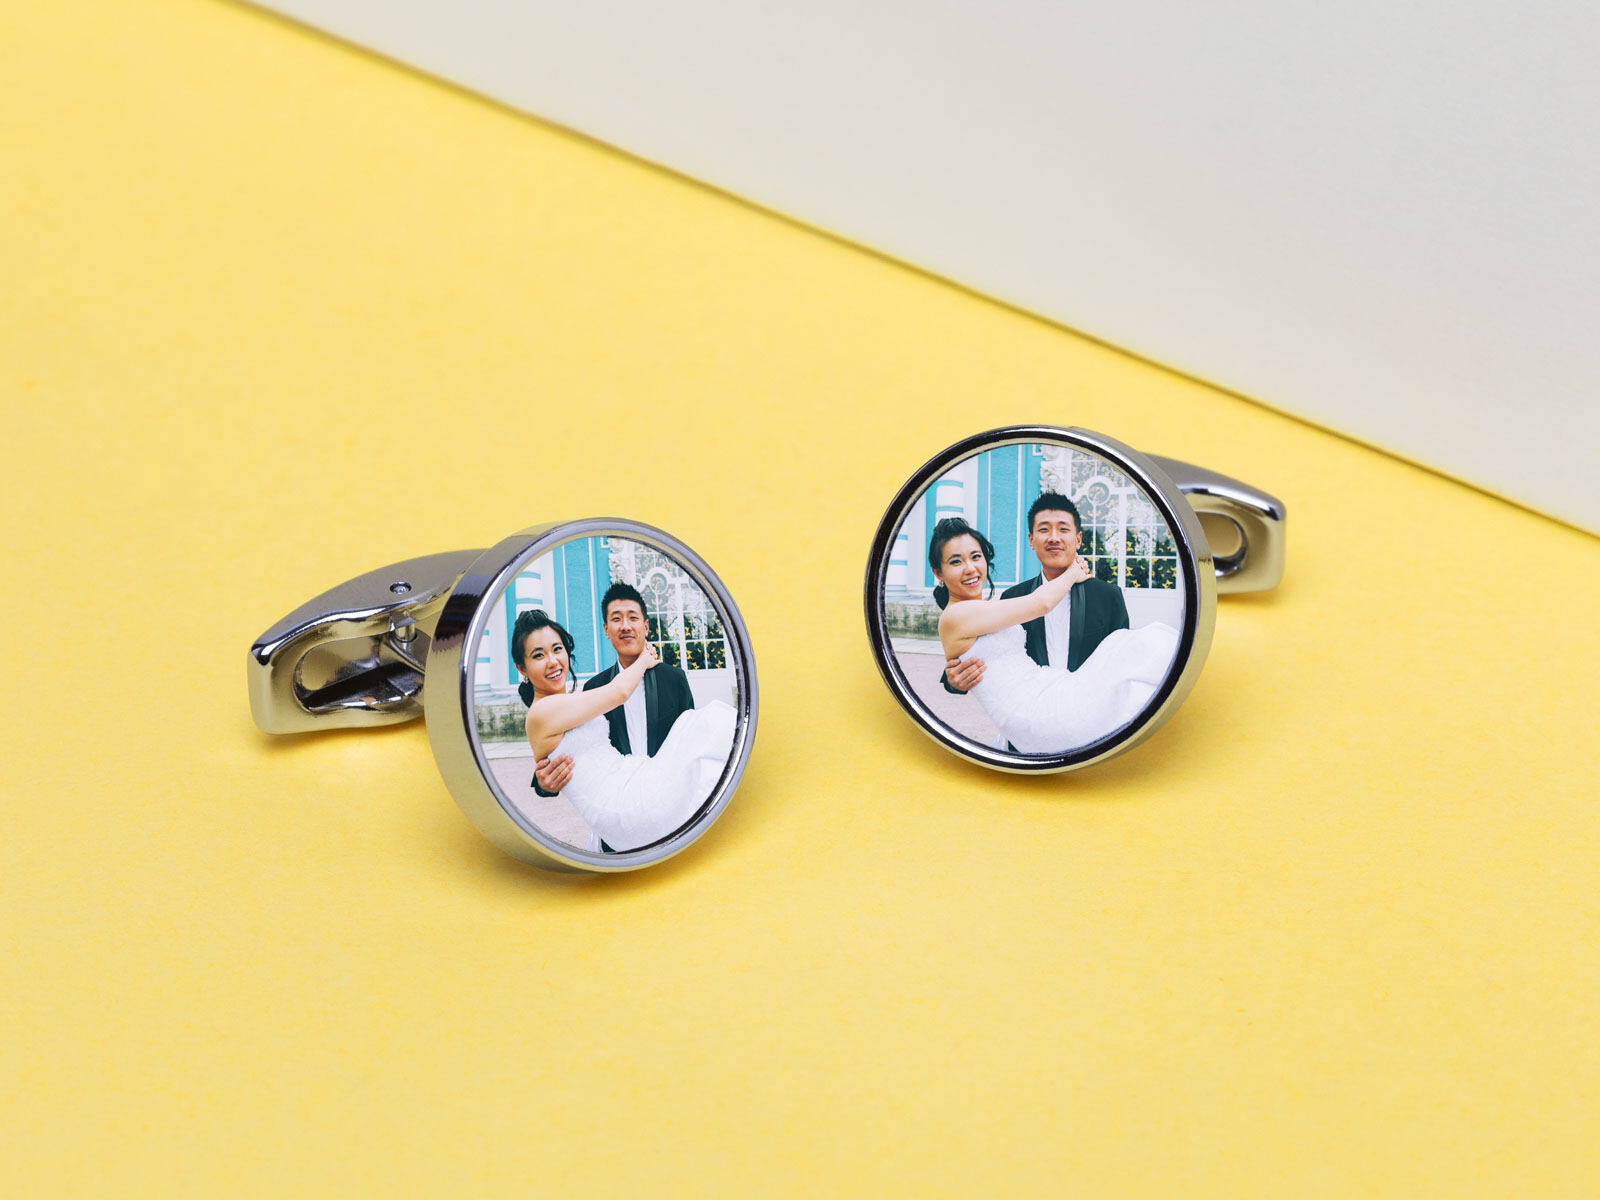 Personalized Gifts for the Groom